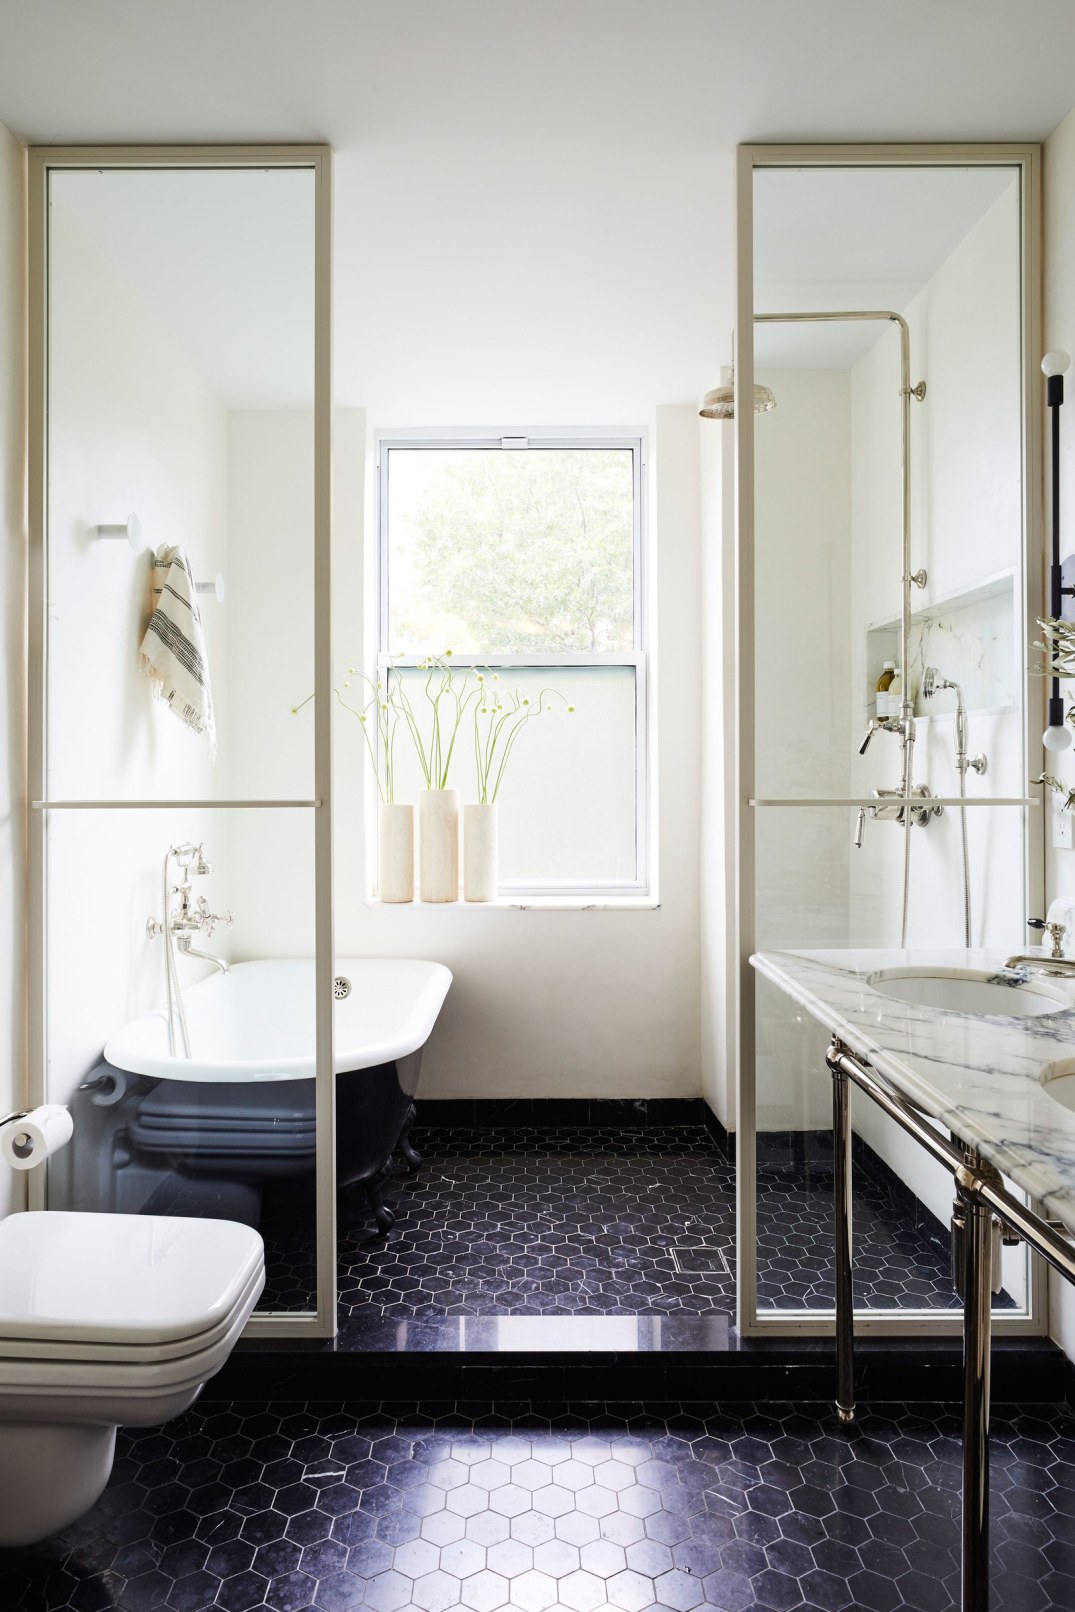 SE_Prospect_Park_West_Master_Bathroom_022